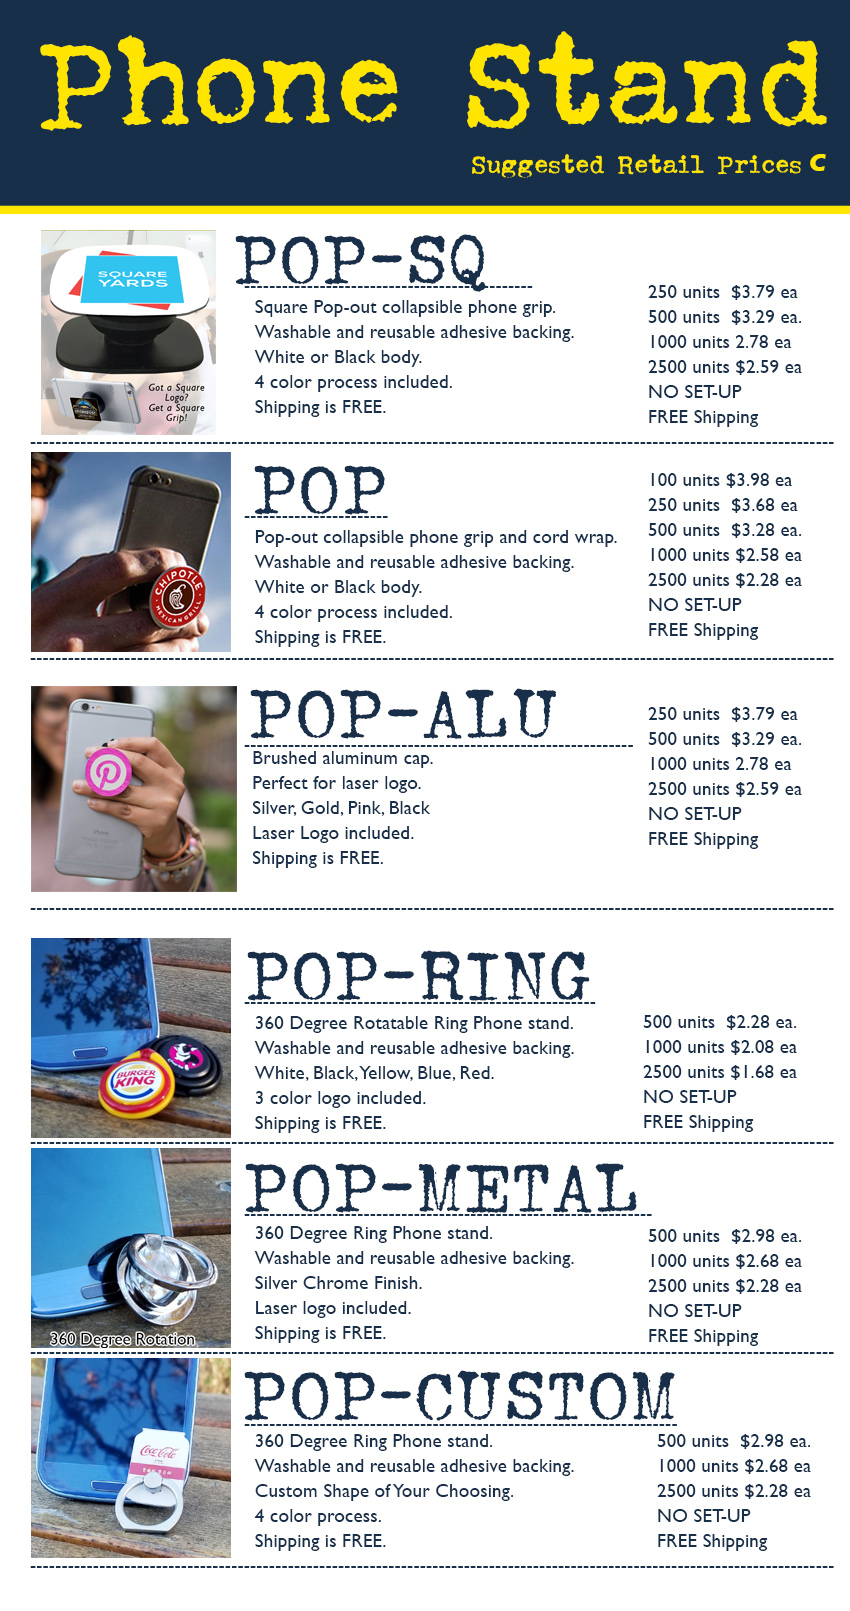 coded pop phone stand prices socket pop prices for tradeshow, b2b, corporate, ad specialty, promotional product.